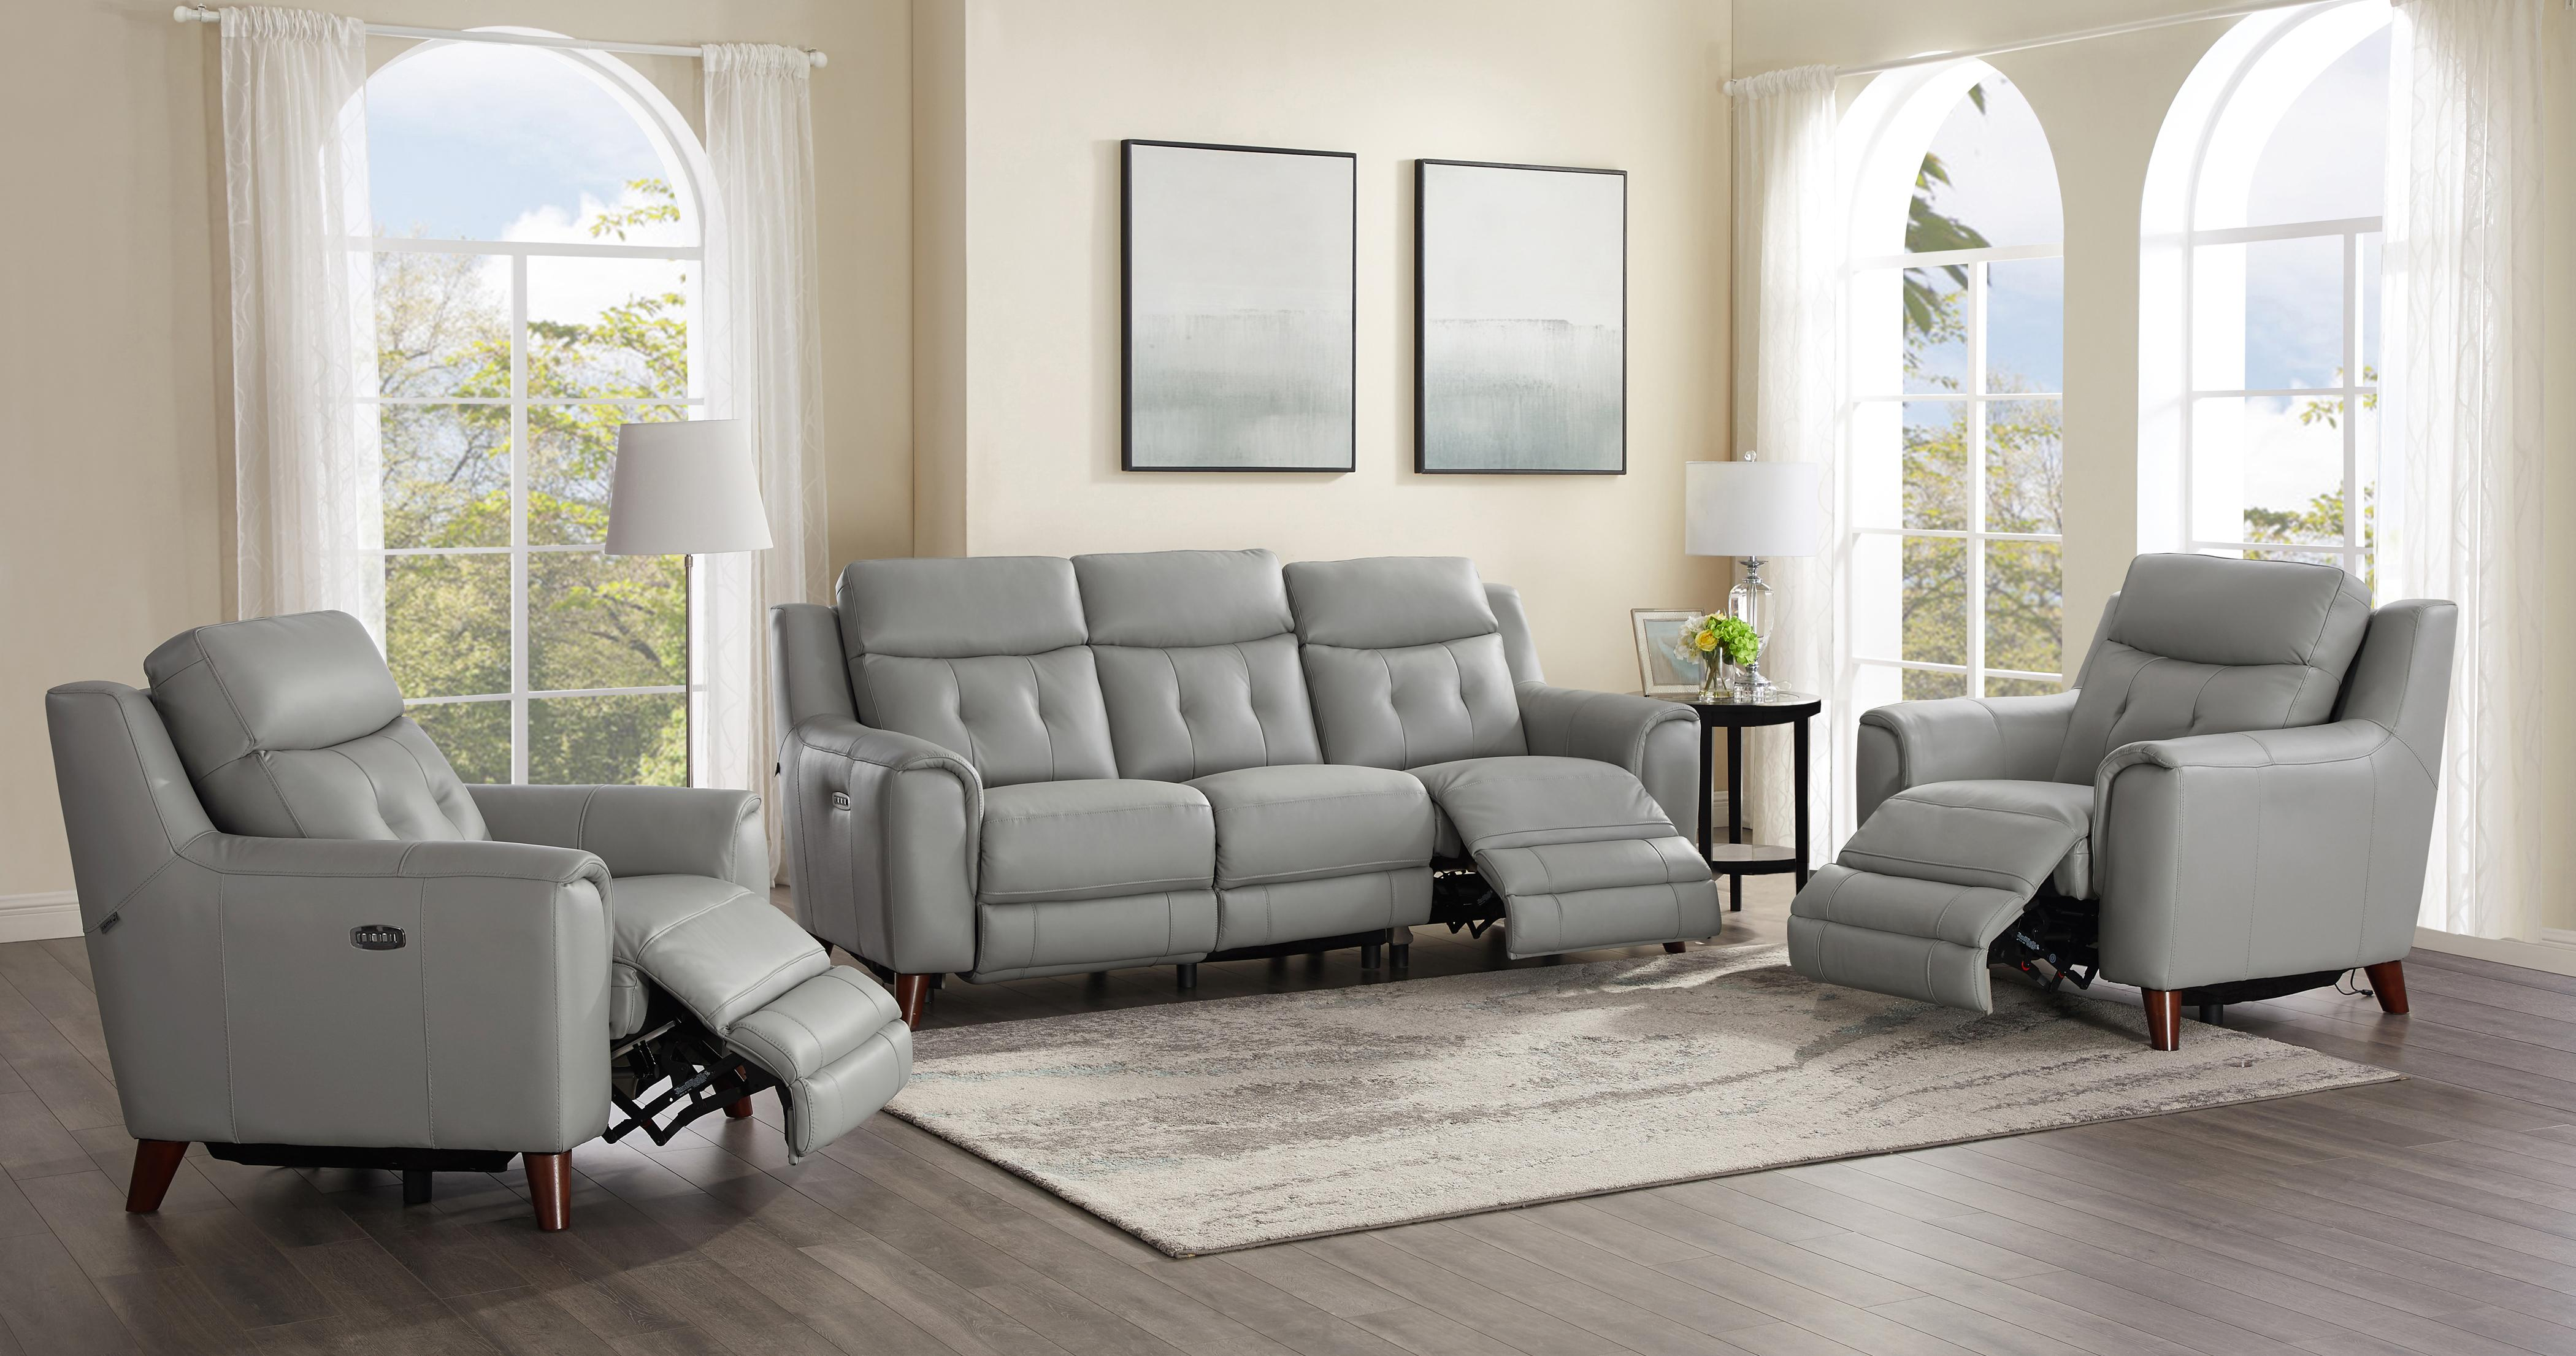 3pc Living Room Set With 2 Recliners Click To Enlarge